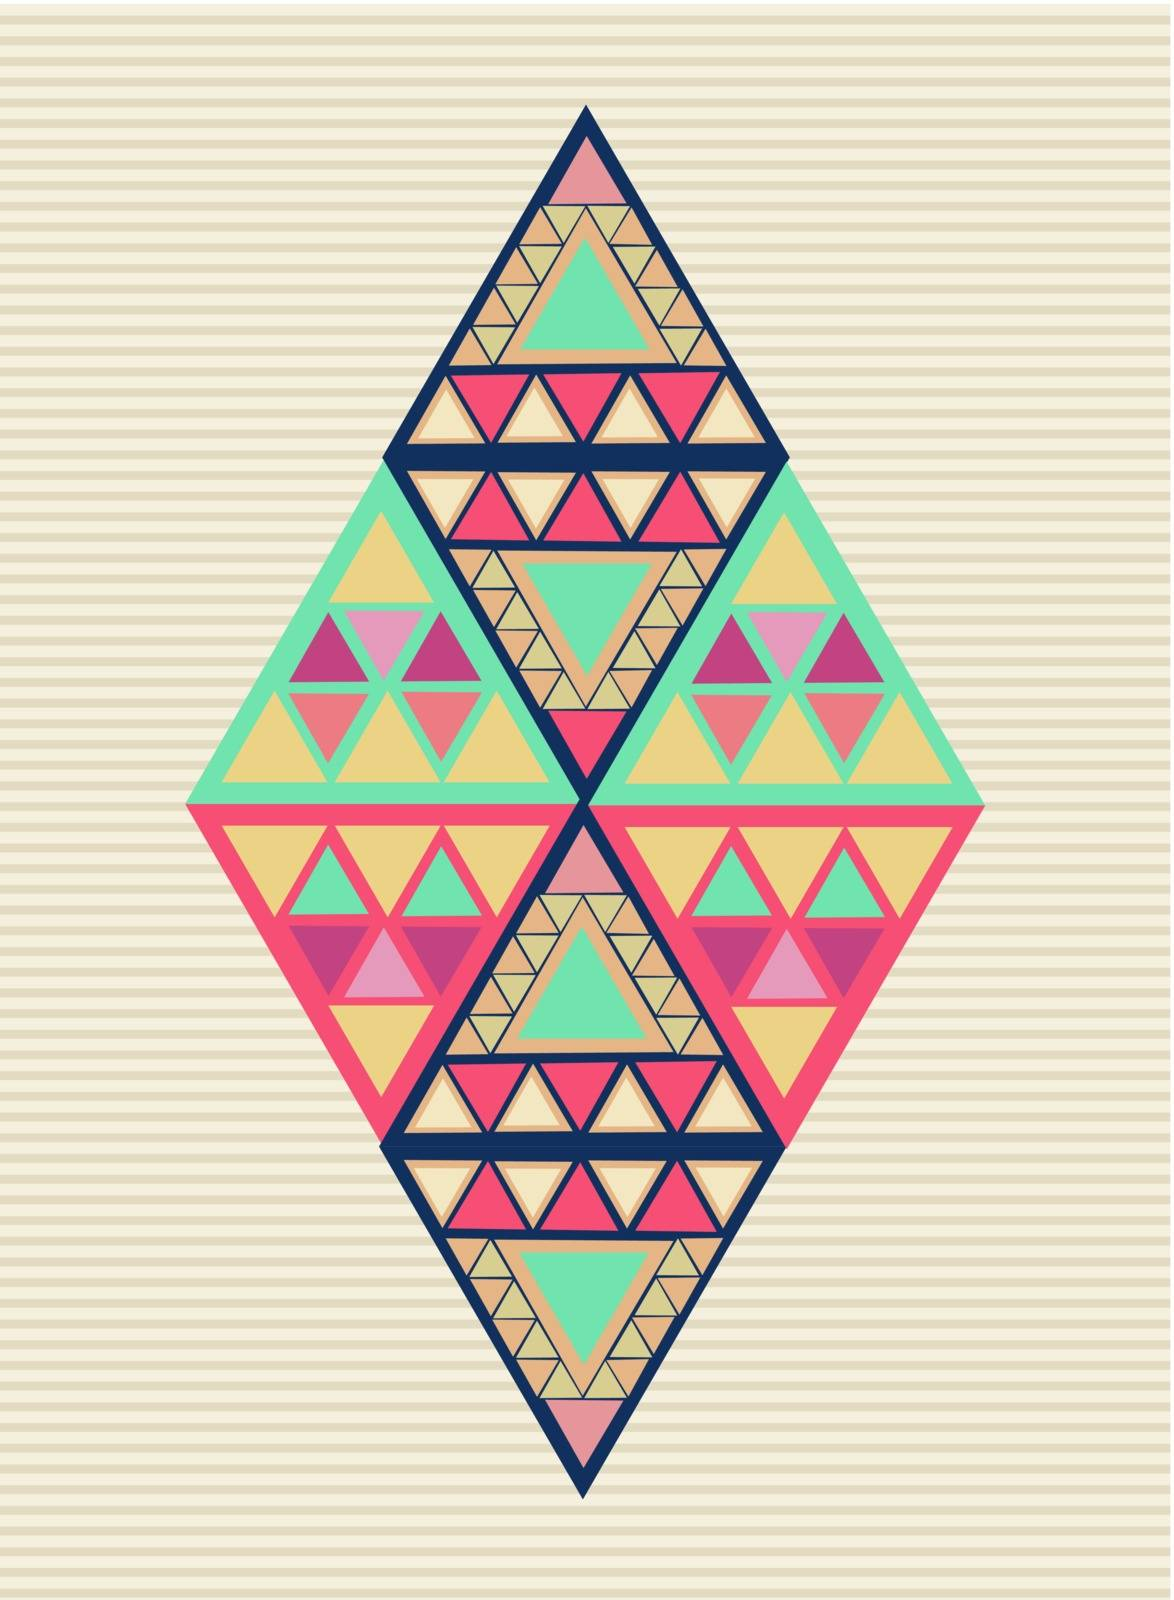 Trendy colorful abstract triangles illustration. Vector file layered for easy editing.